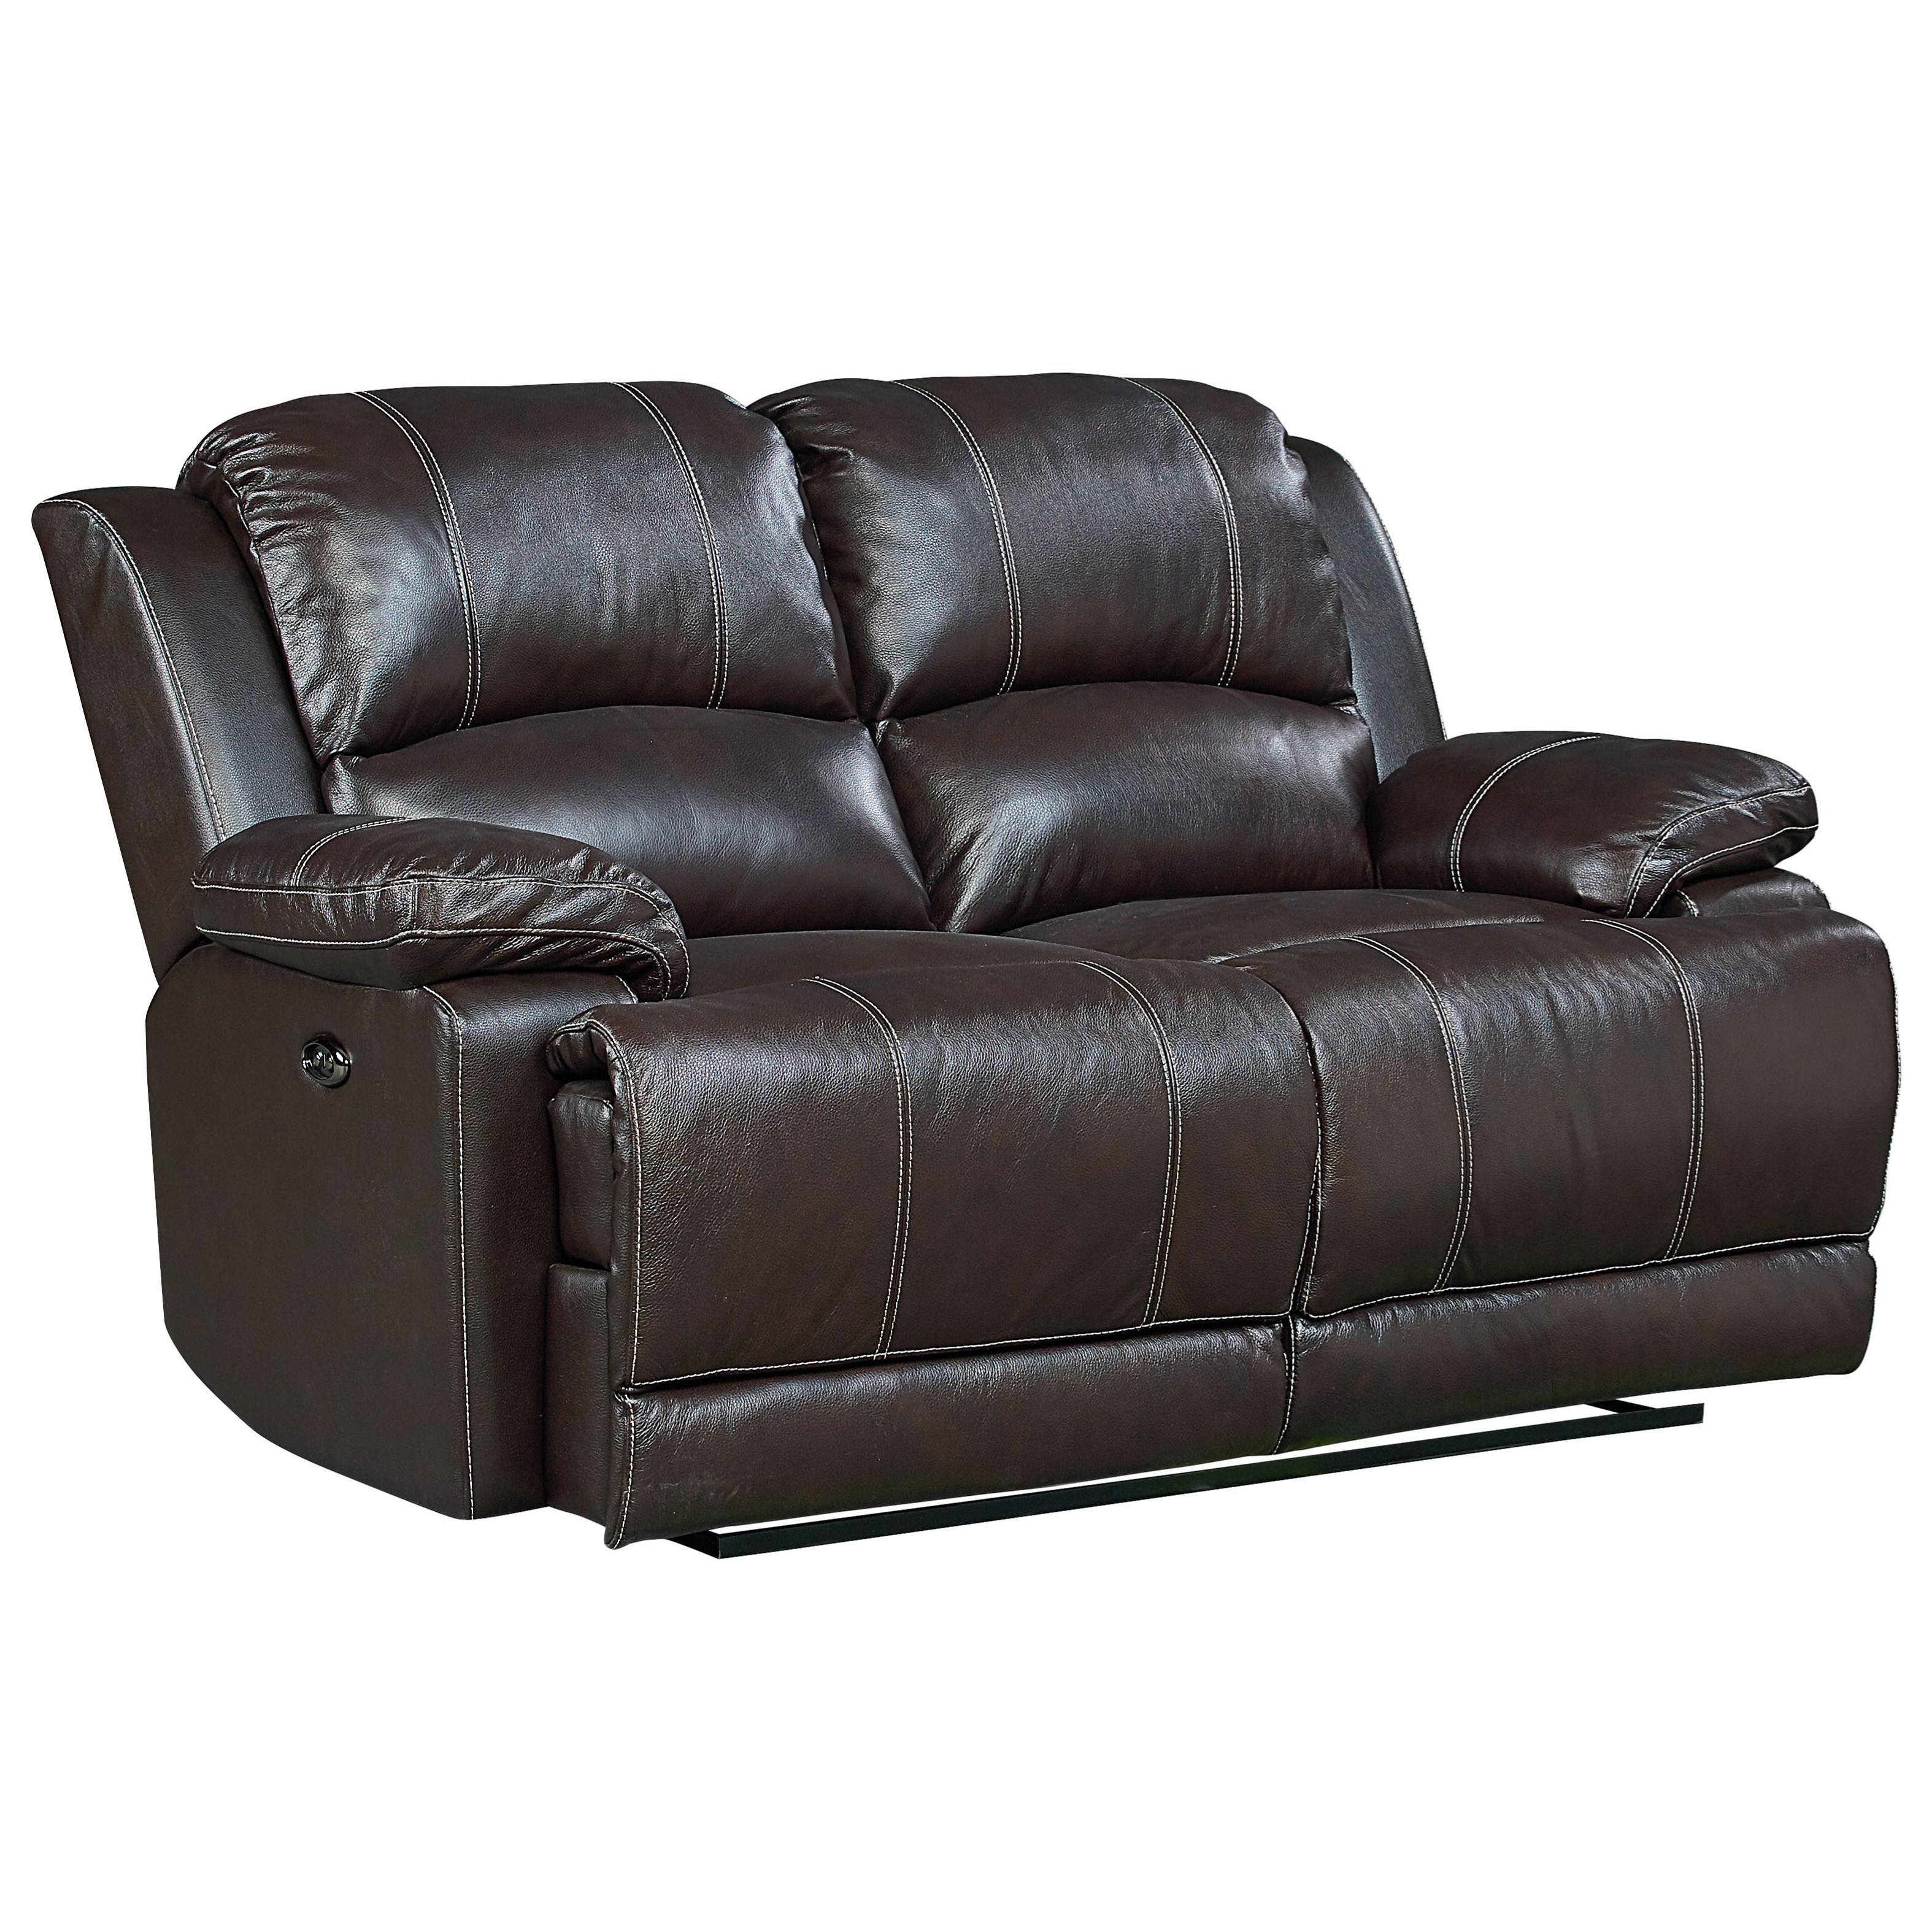 Standard furniture audubon power reclining leather loveseat wayside furniture reclining sofa Power loveseat recliner